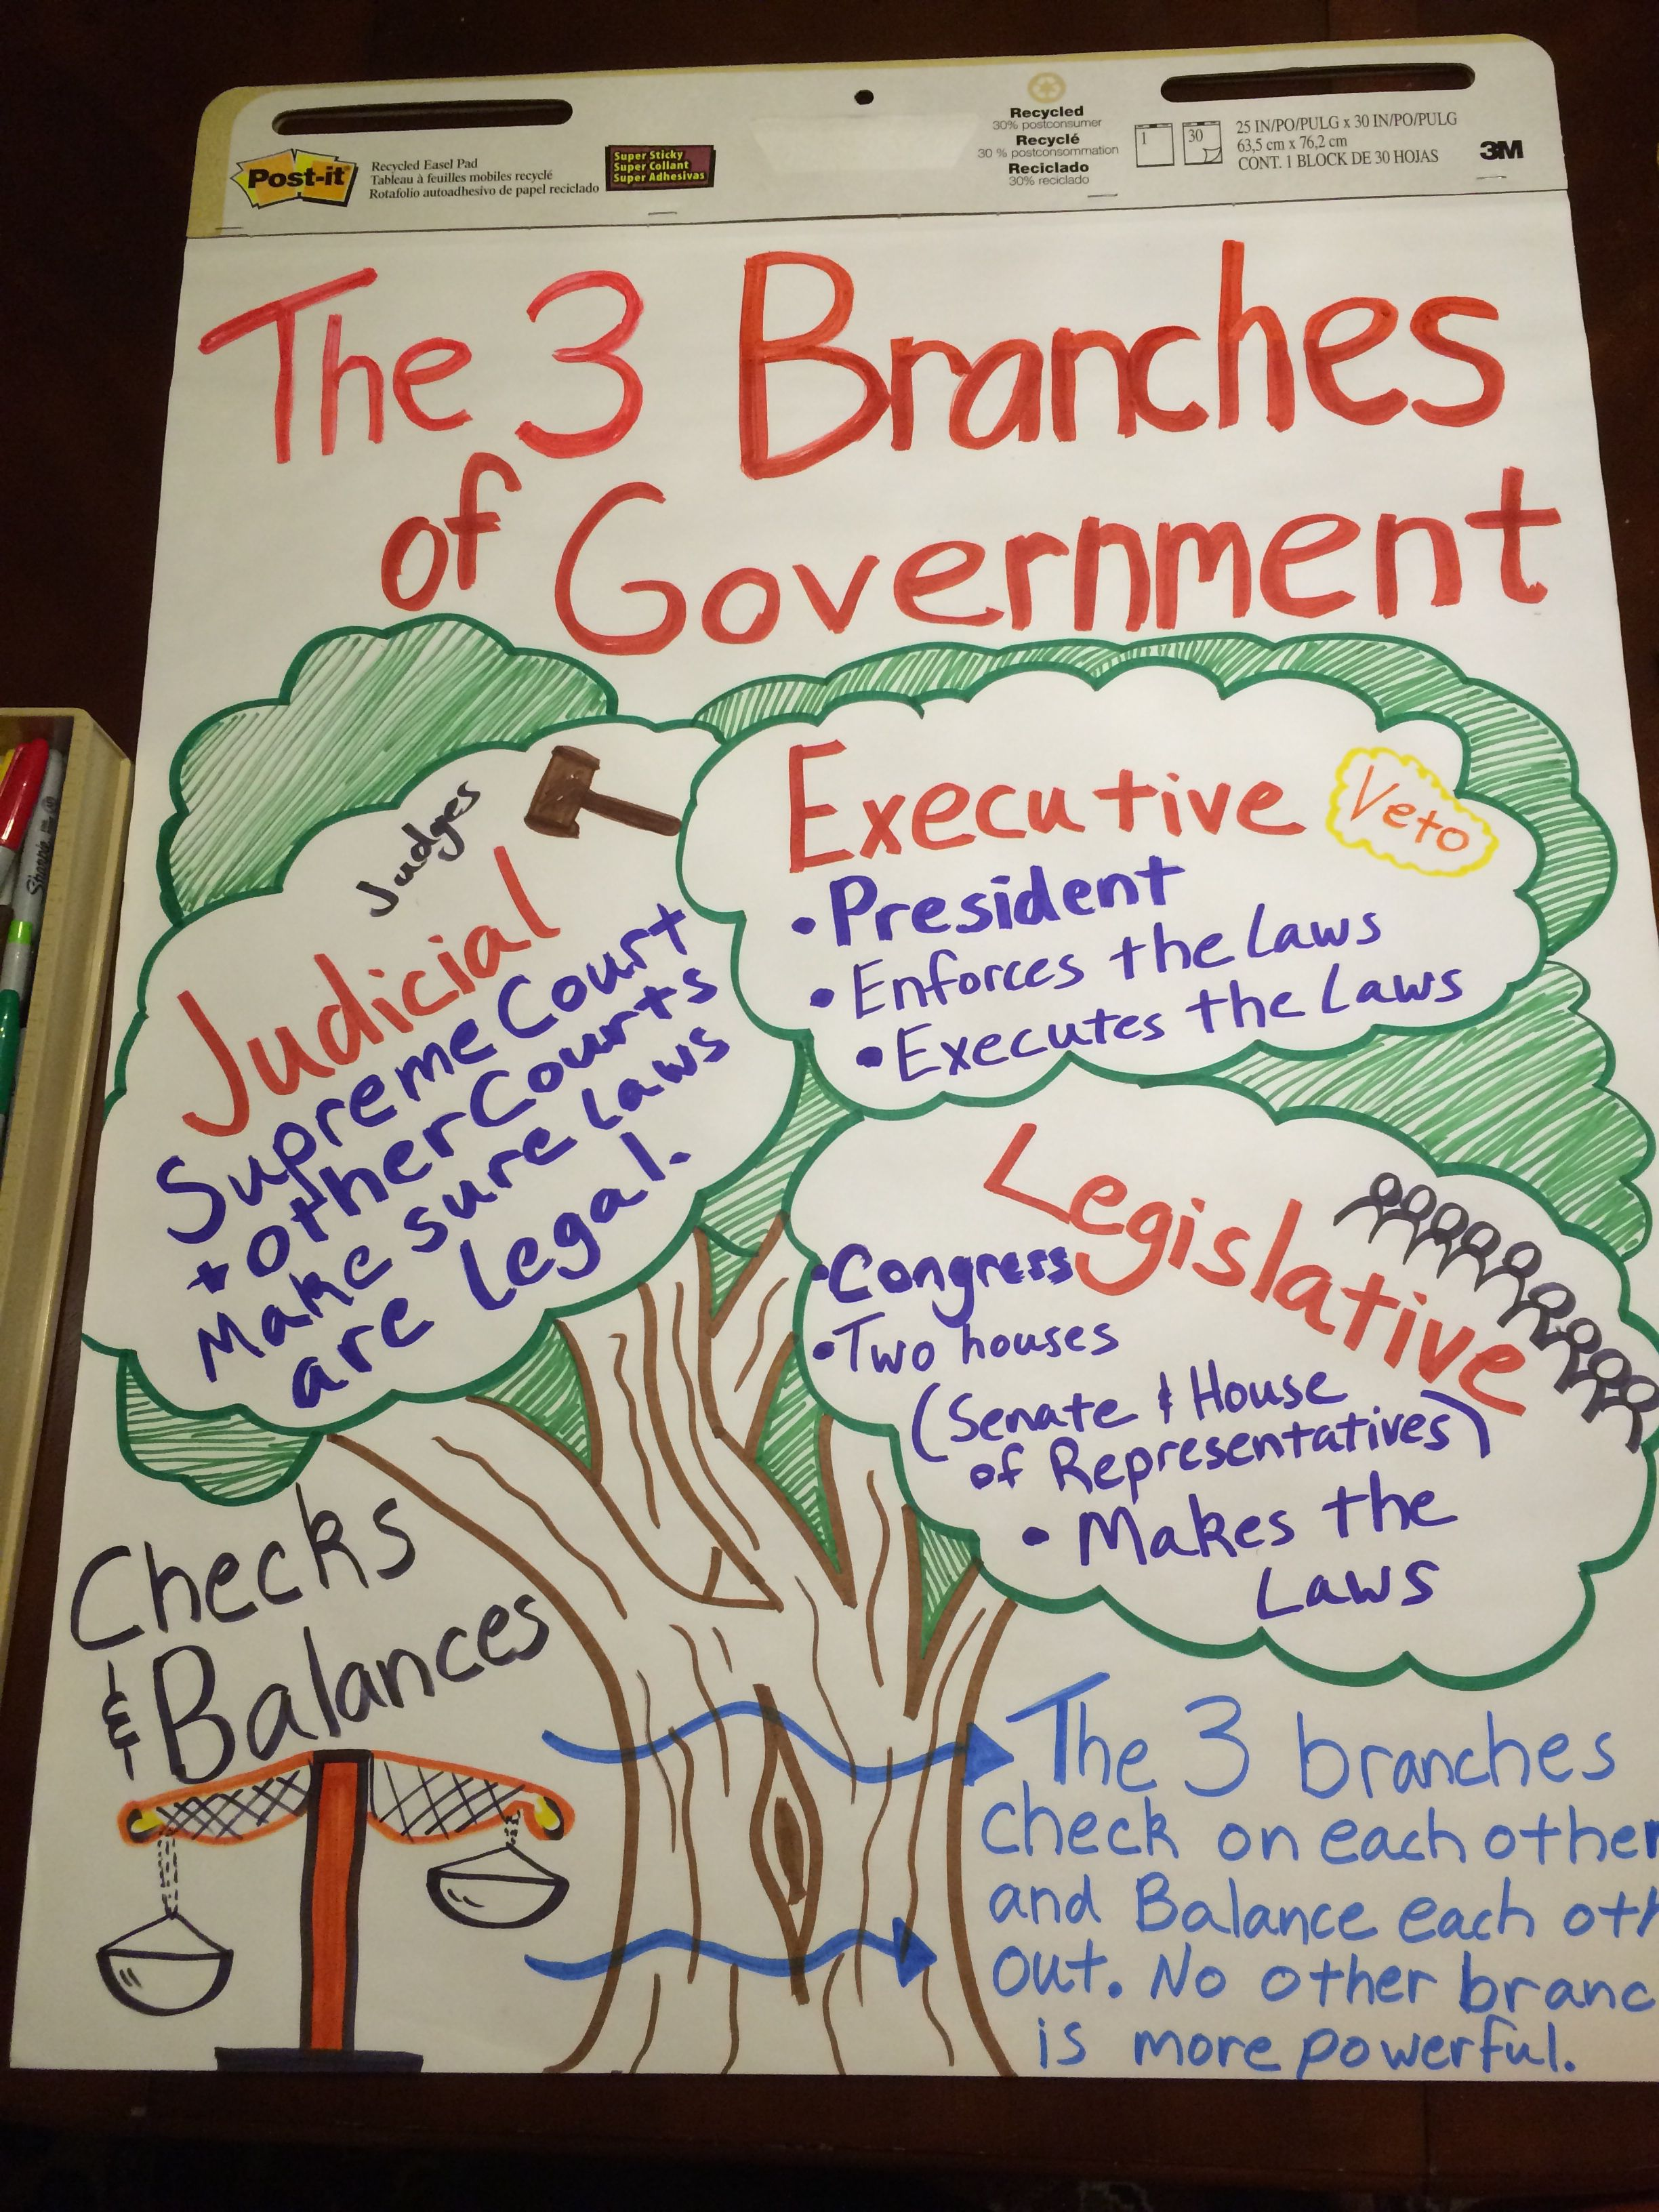 Us Government Checks And Balances Diagram Gy6 150cc Buggy Wiring Anchor Chart For The Branches Of